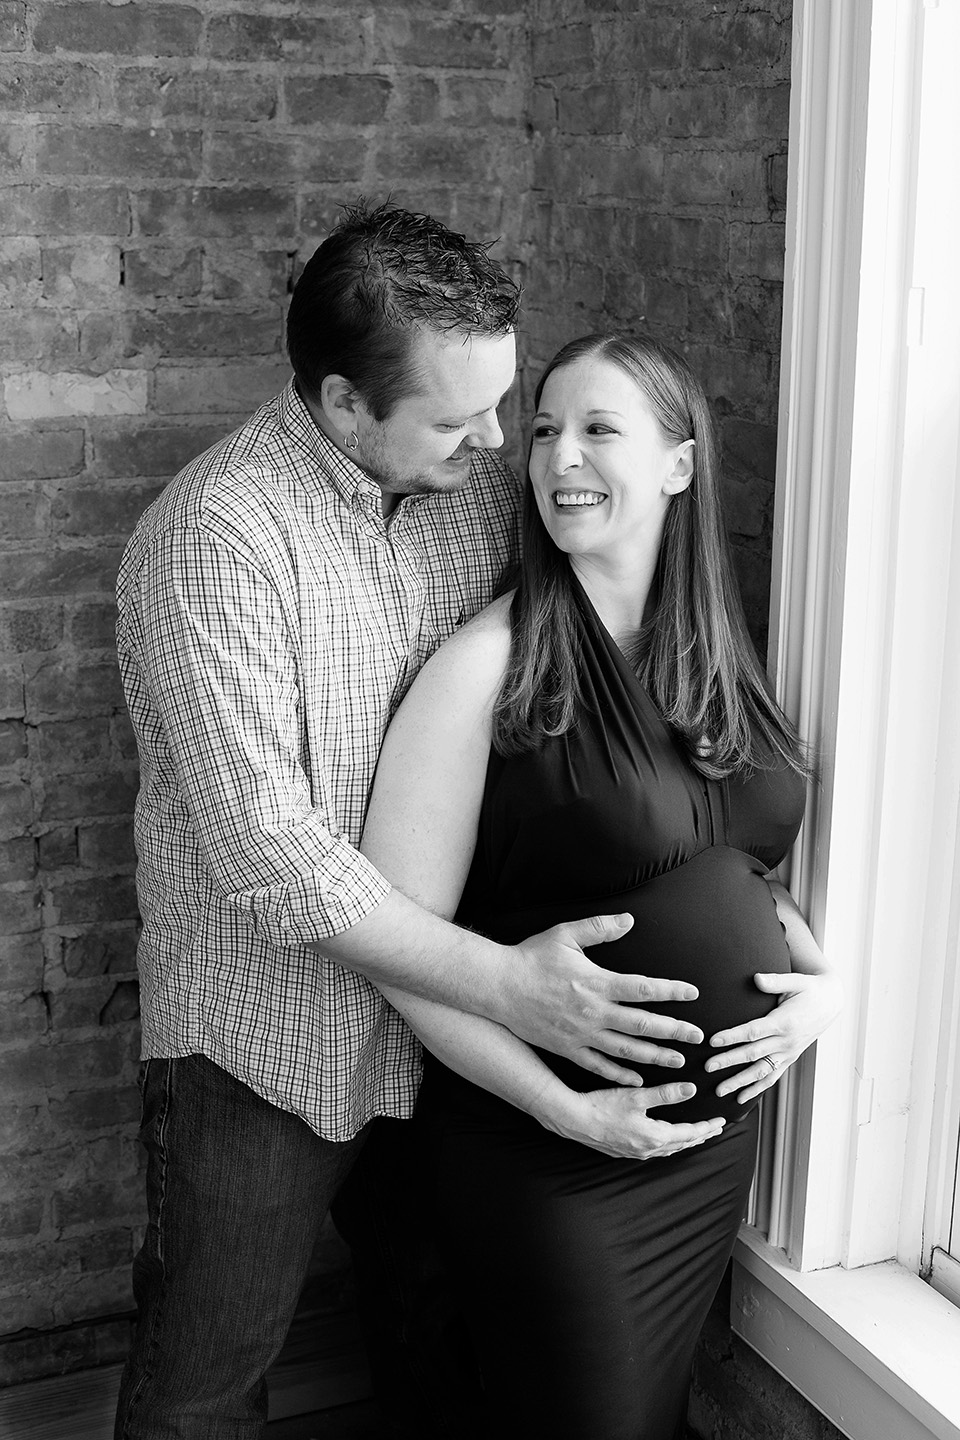 Maternity portraits in Cincinnati OH, Mischief and Laughs Photography